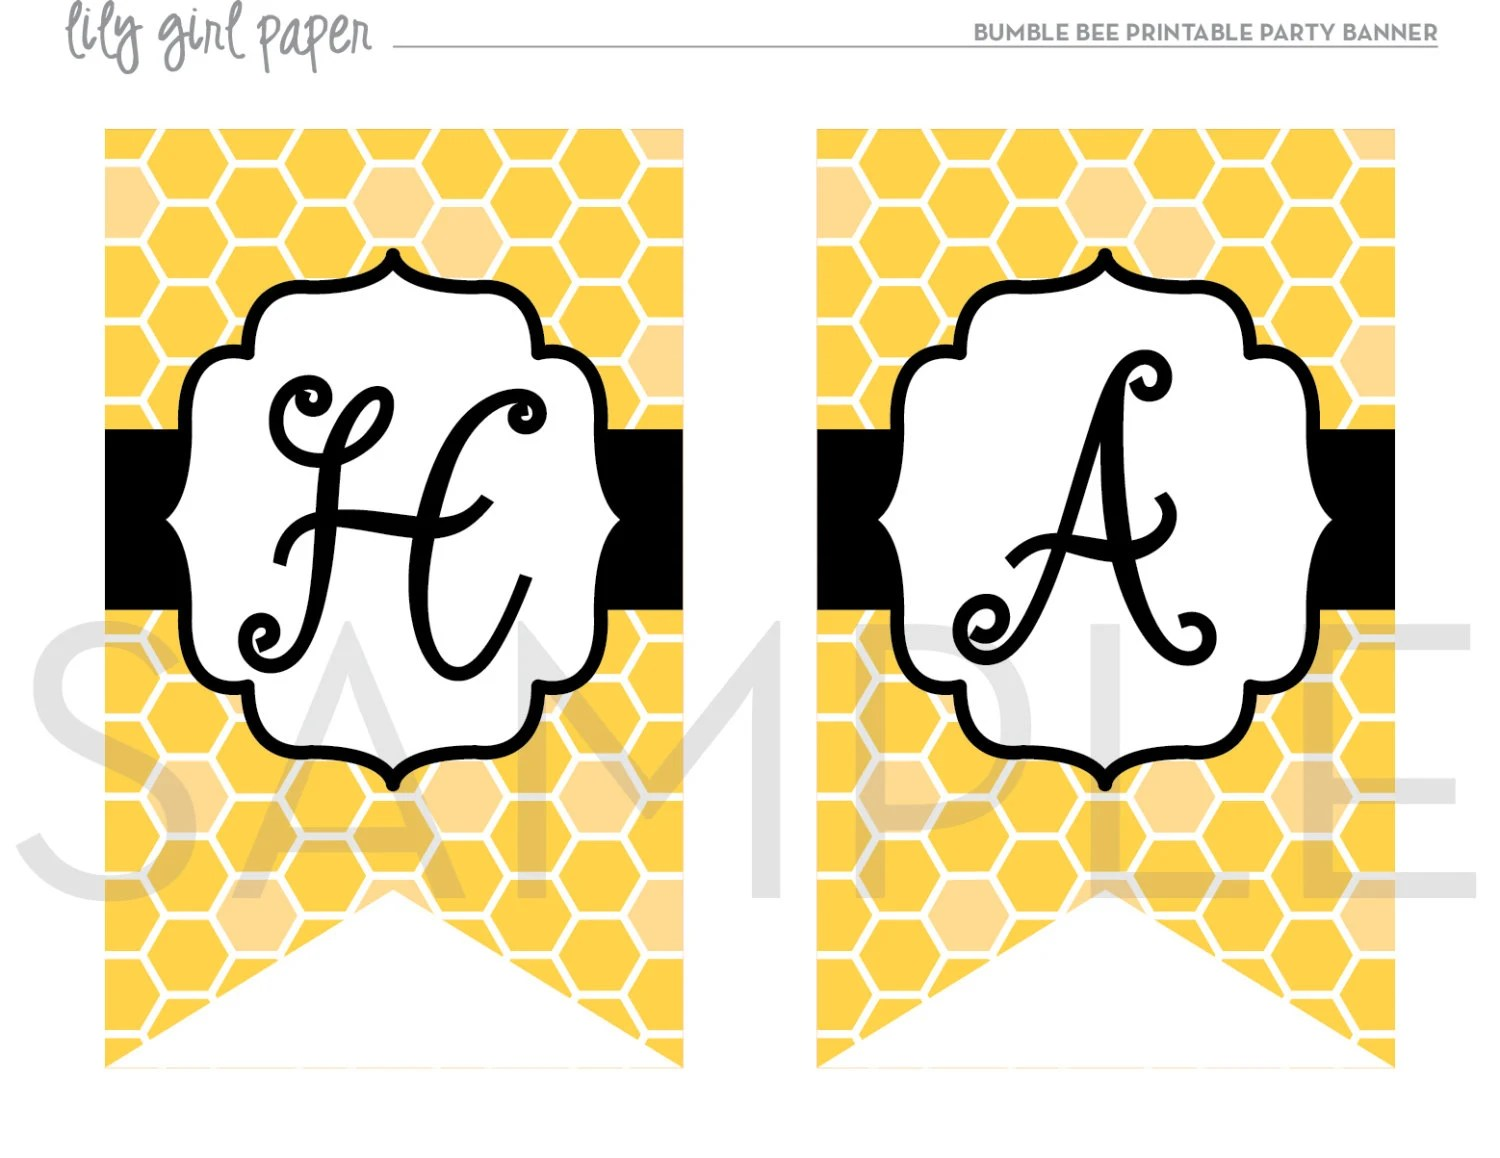 Bumble Bee Party Banner, Bumble Bee Birthday Bunting, High Chair